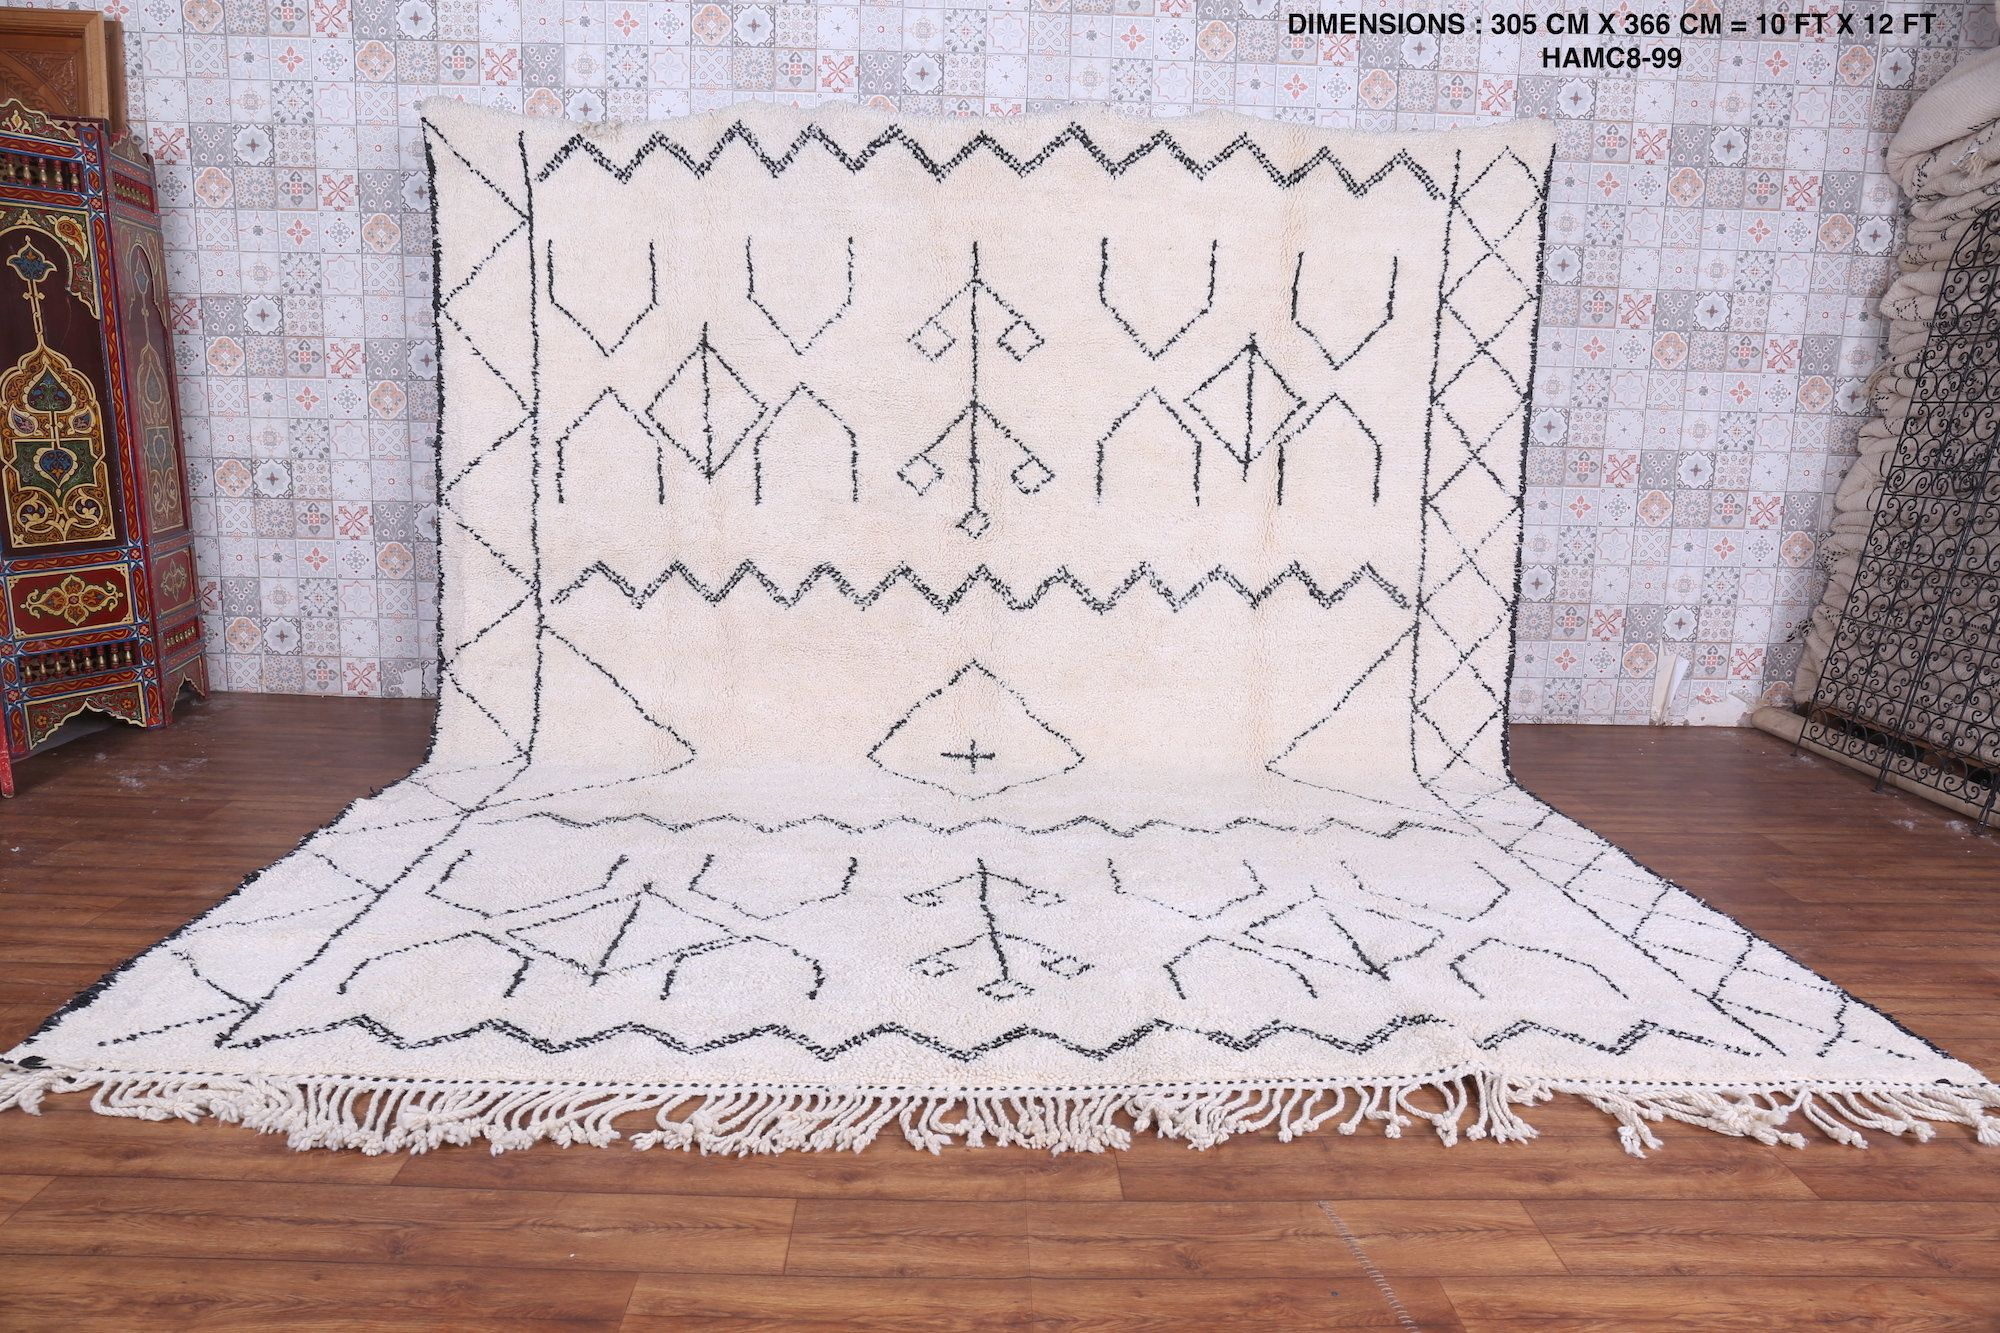 Large White Authentic Moroccan Rug 10ft X 12ft Area Rug Moroccan Wool Vintage Authentic Beni Ourain Area Rug Mor In 2020 Beni Ourain Rugs Moroccan Rug Authentic Rugs